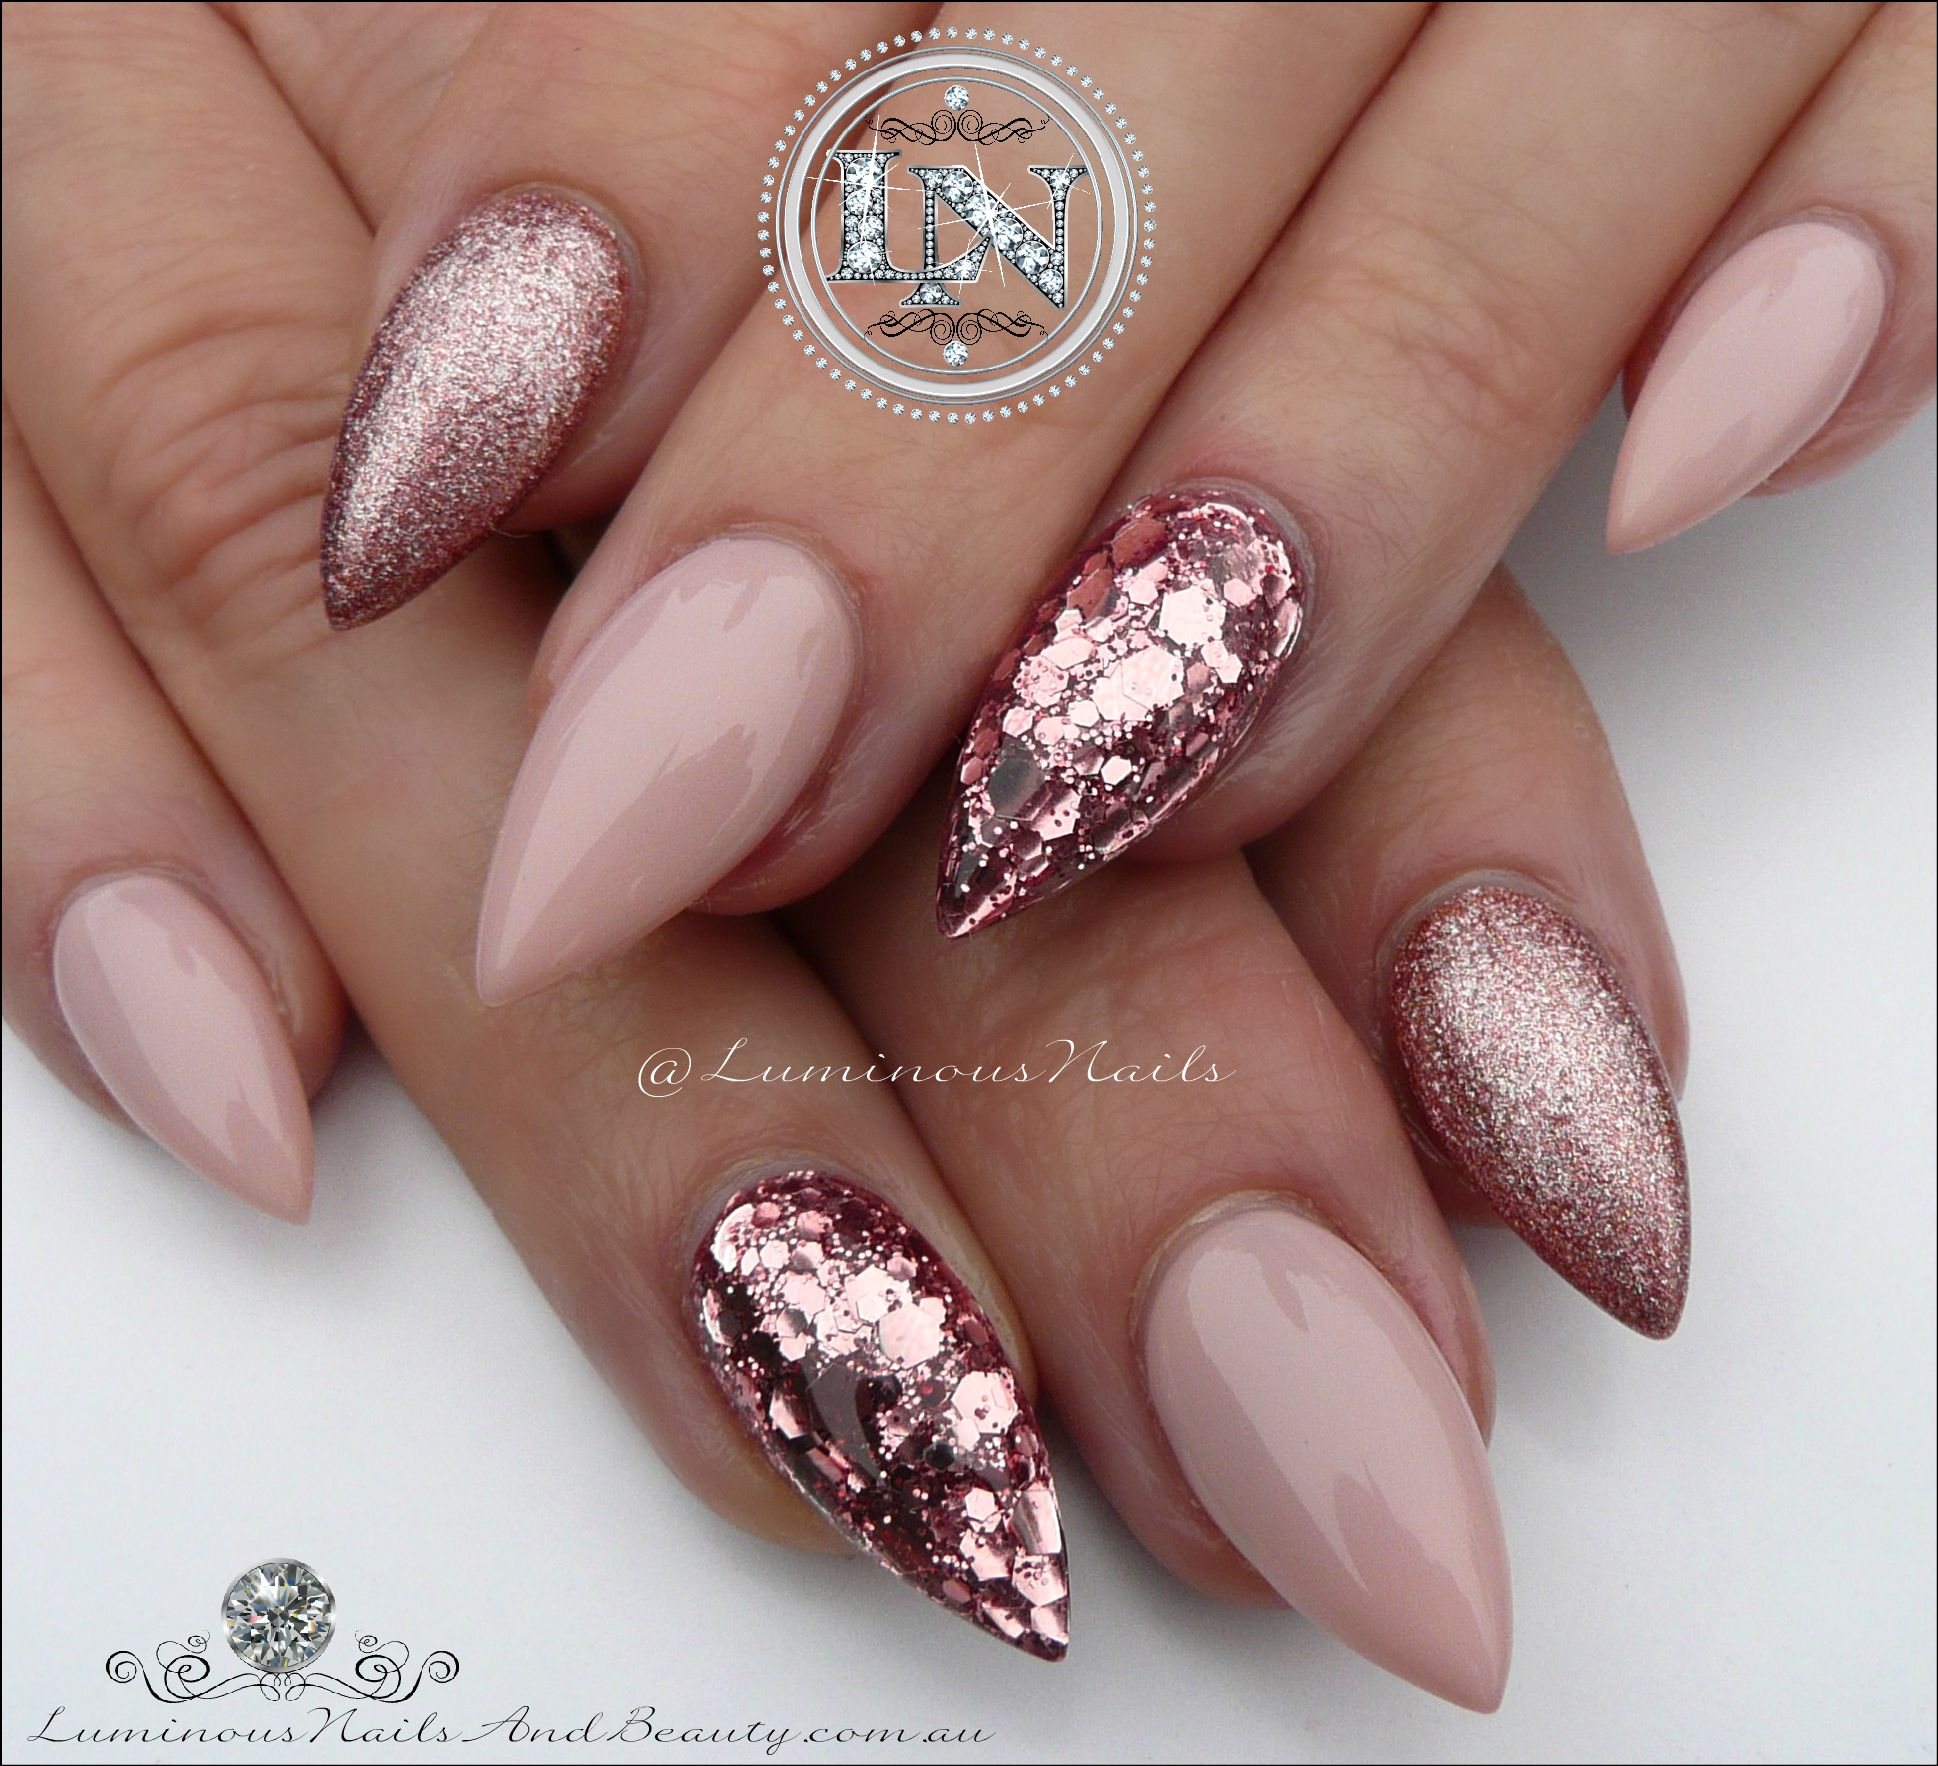 fashionstyle.ersa | Nails | Pinterest | Nagelschere, Fingernägel und ...